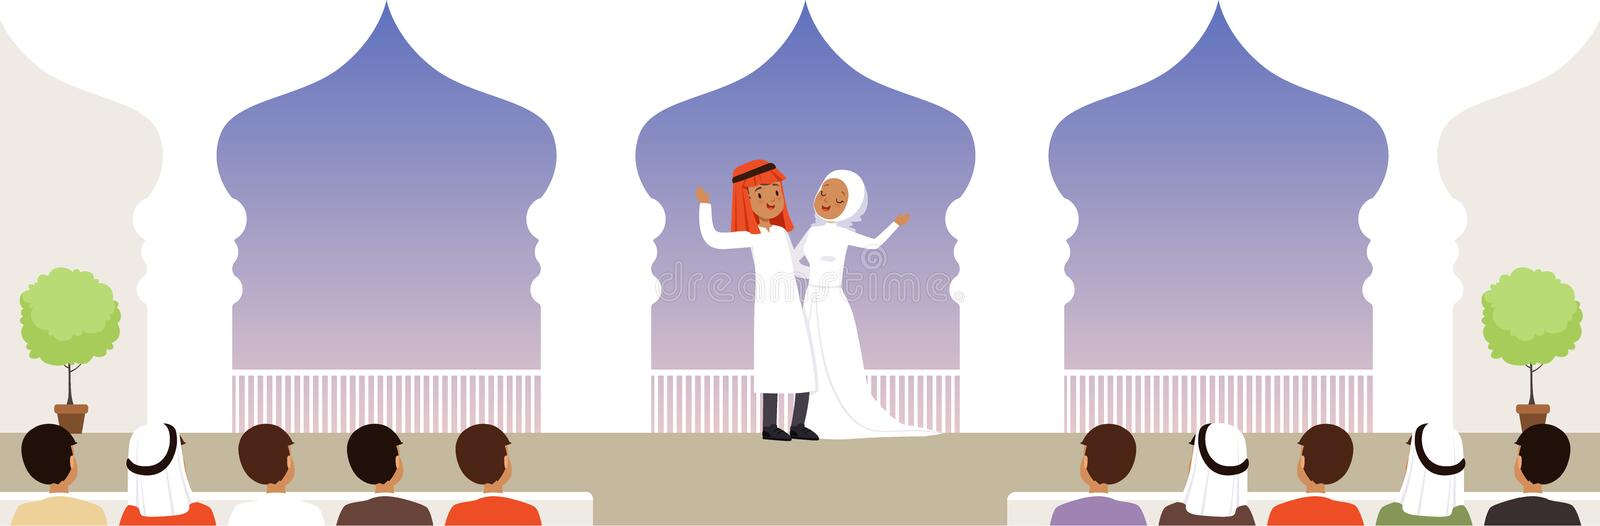 Muslim wedding ceremony, newlyweds and their guests horizontal vector Illustration vector illustration